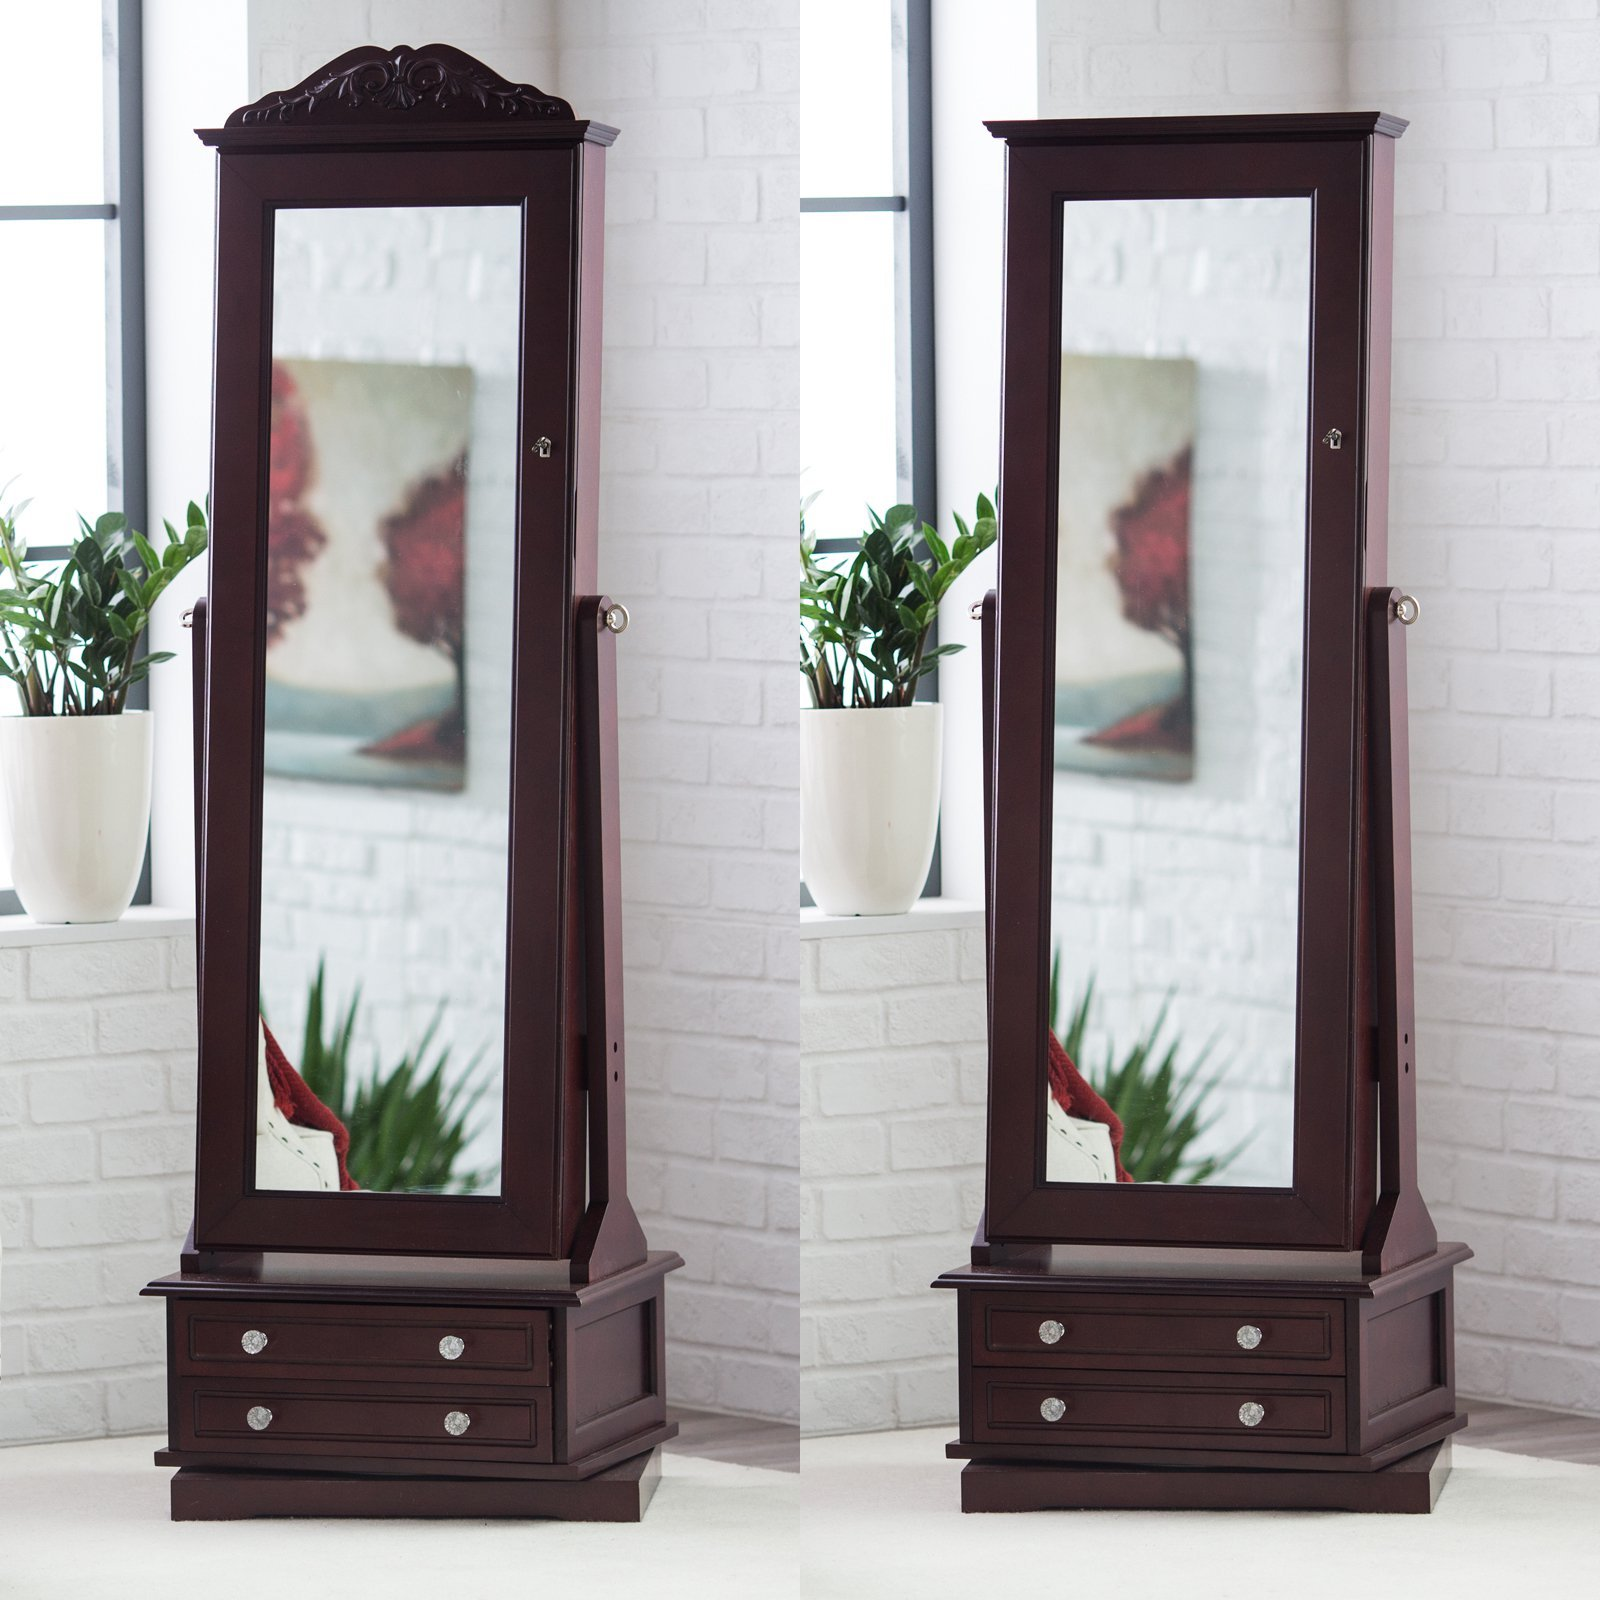 Standing Jewelry Armoire ~ Cheval mirror jewelry armoire swivel floor standing